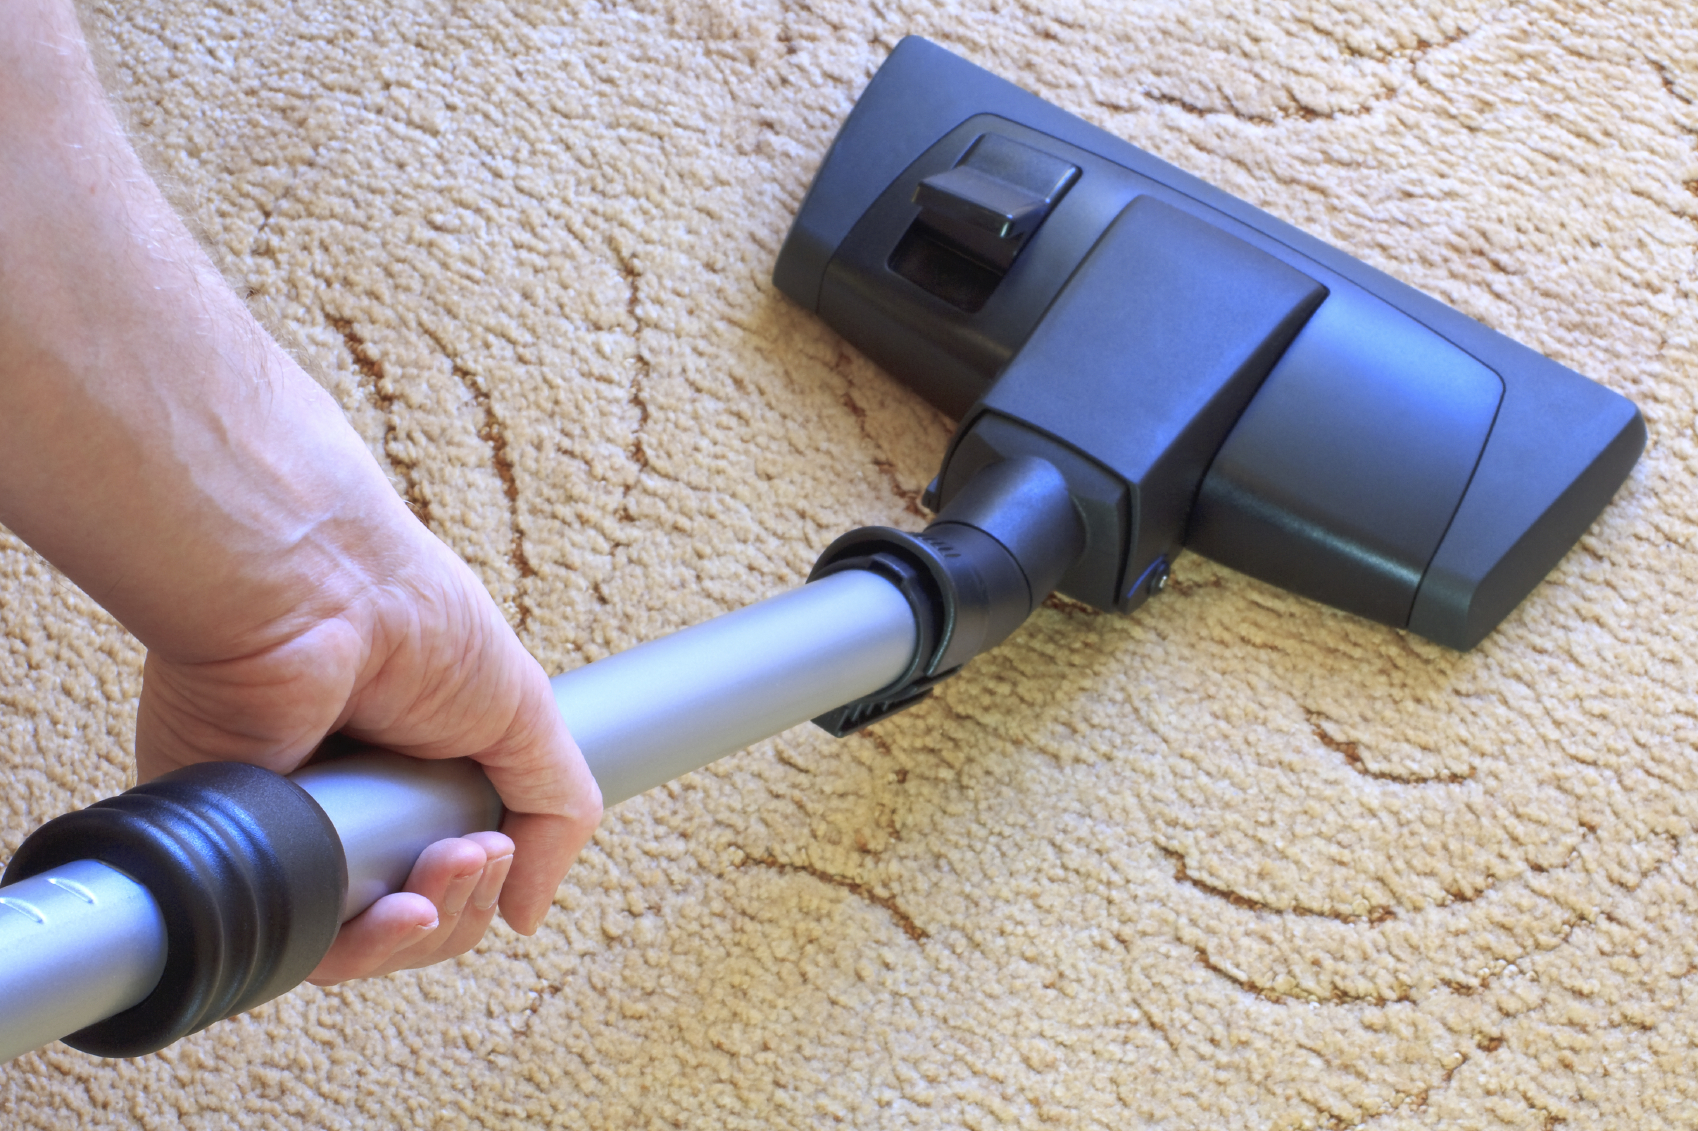 How to Remove Common Stubborn Carpet Stains